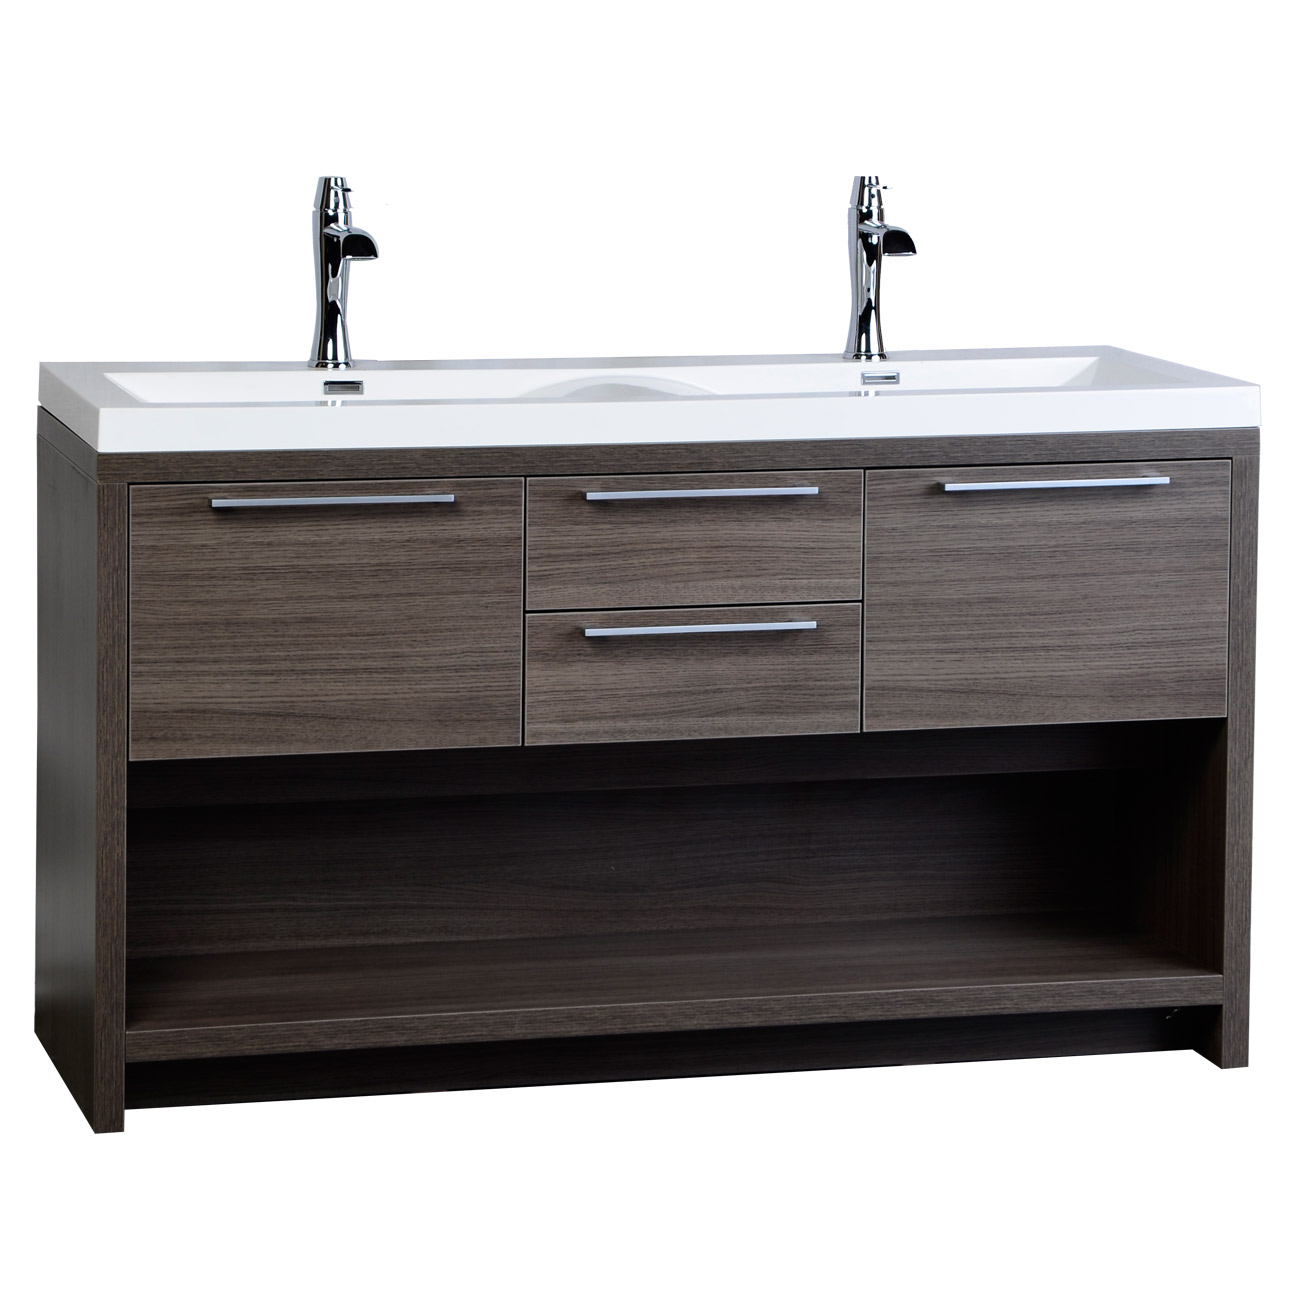 Two Sink Vanities 57 Quot Contemporary Double Vanity Set With Wavy Sink Grey Oak